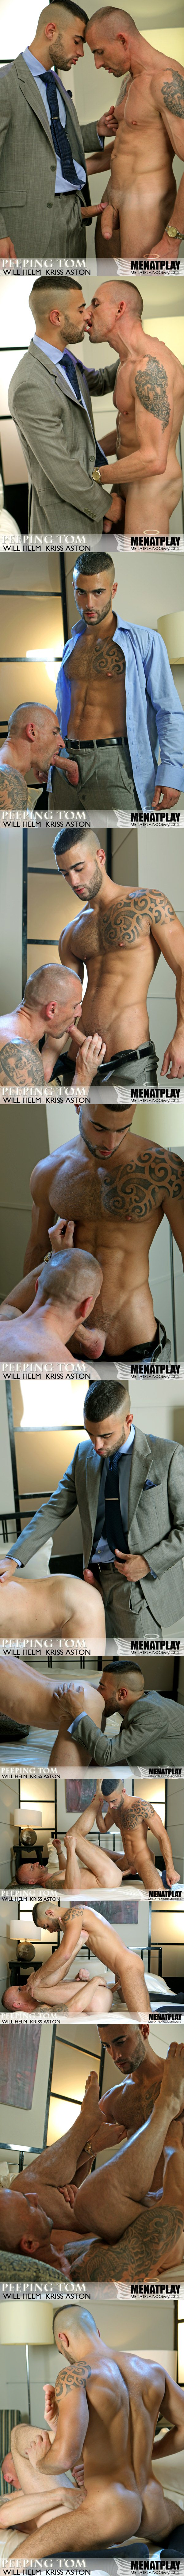 Will Helm kisses, rims and fucks Kriss Aston at Menatplay 02